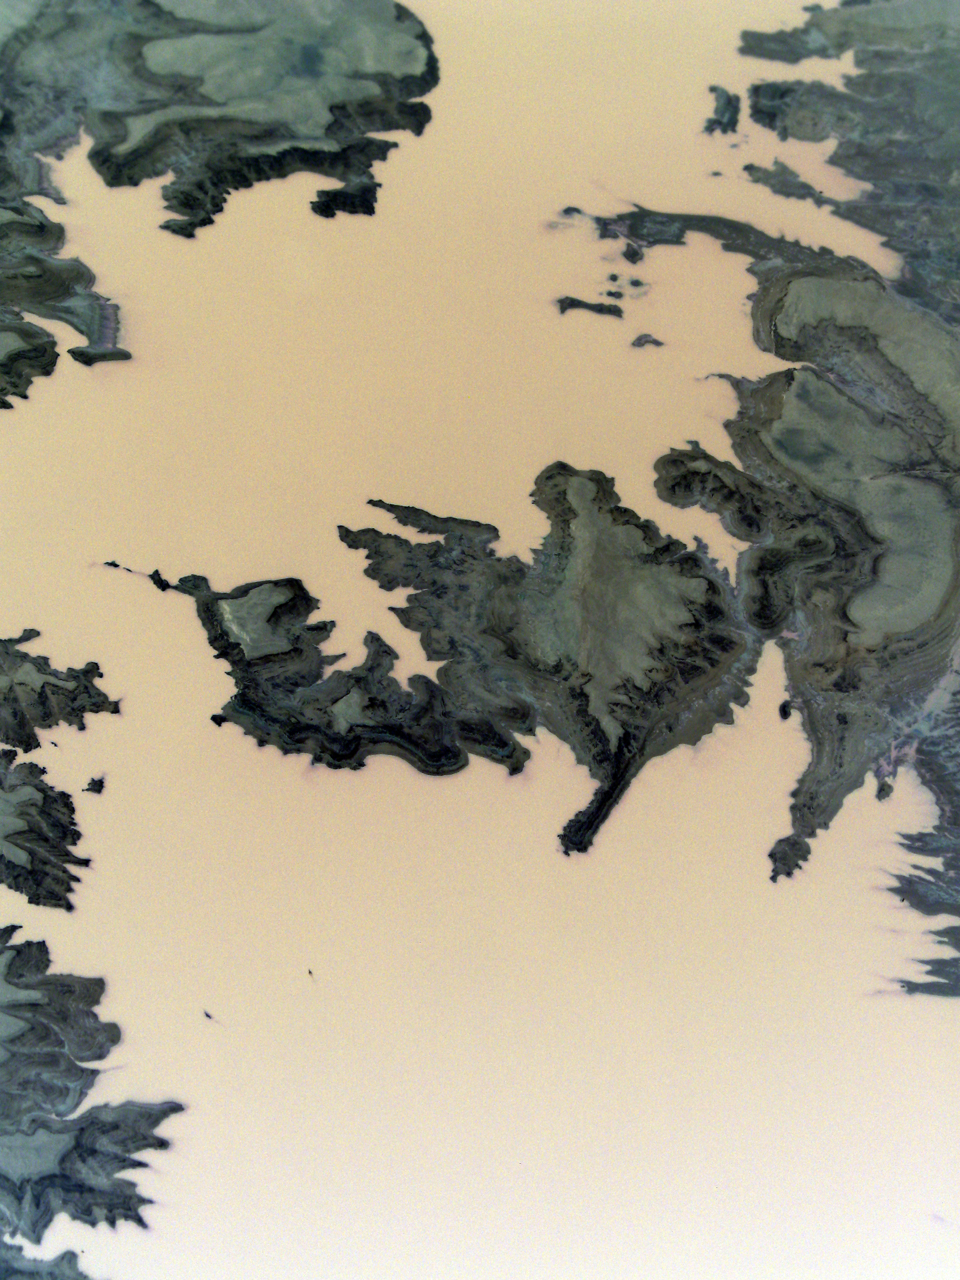 McClanahan_Branching-Rivers28_resin over photo on panel_24x30_1600.jpg